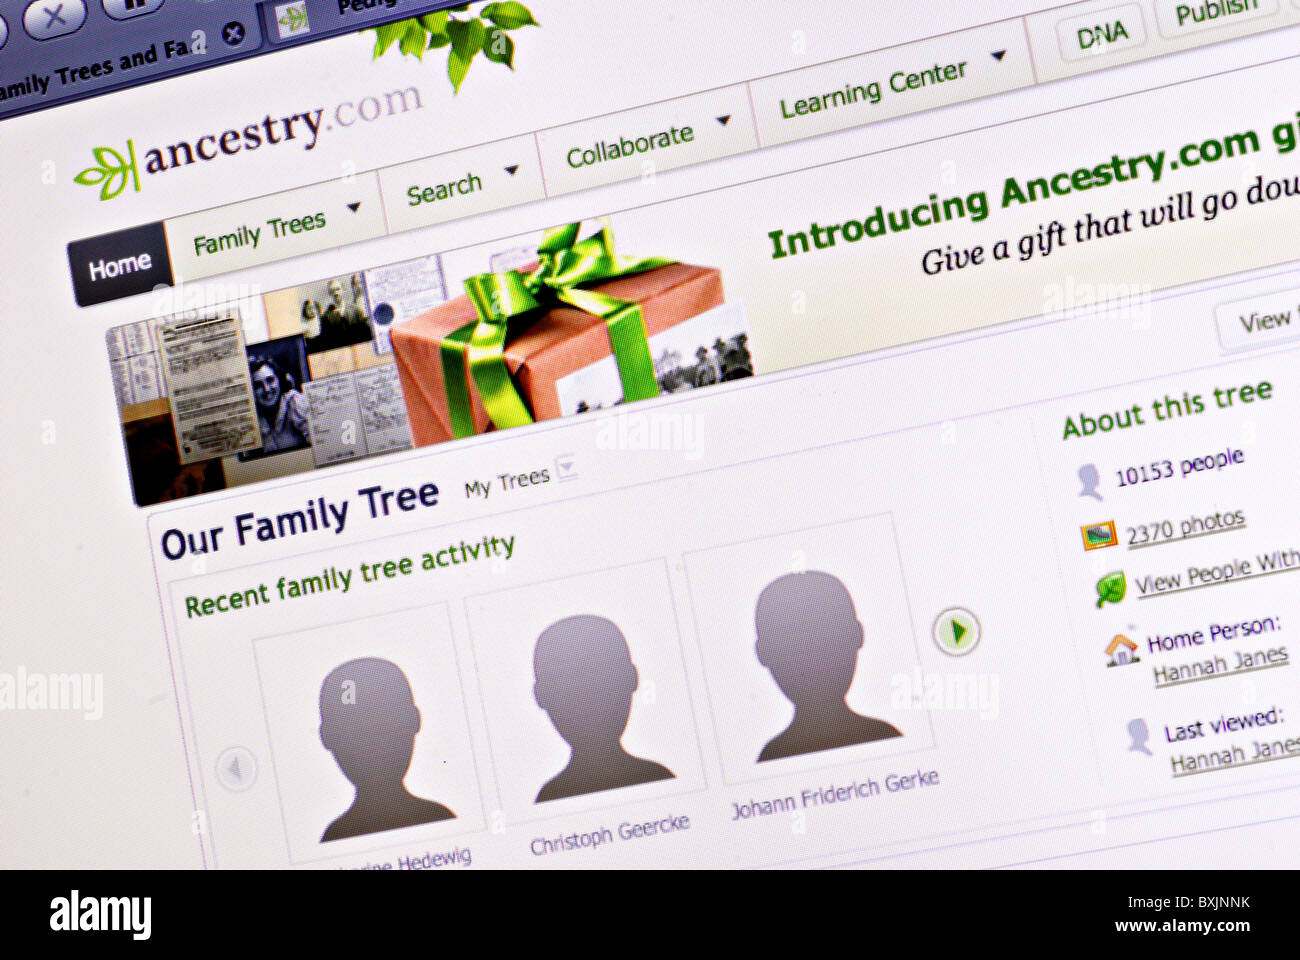 Family tree and genealogy information on Ancestry.com - Stock Image